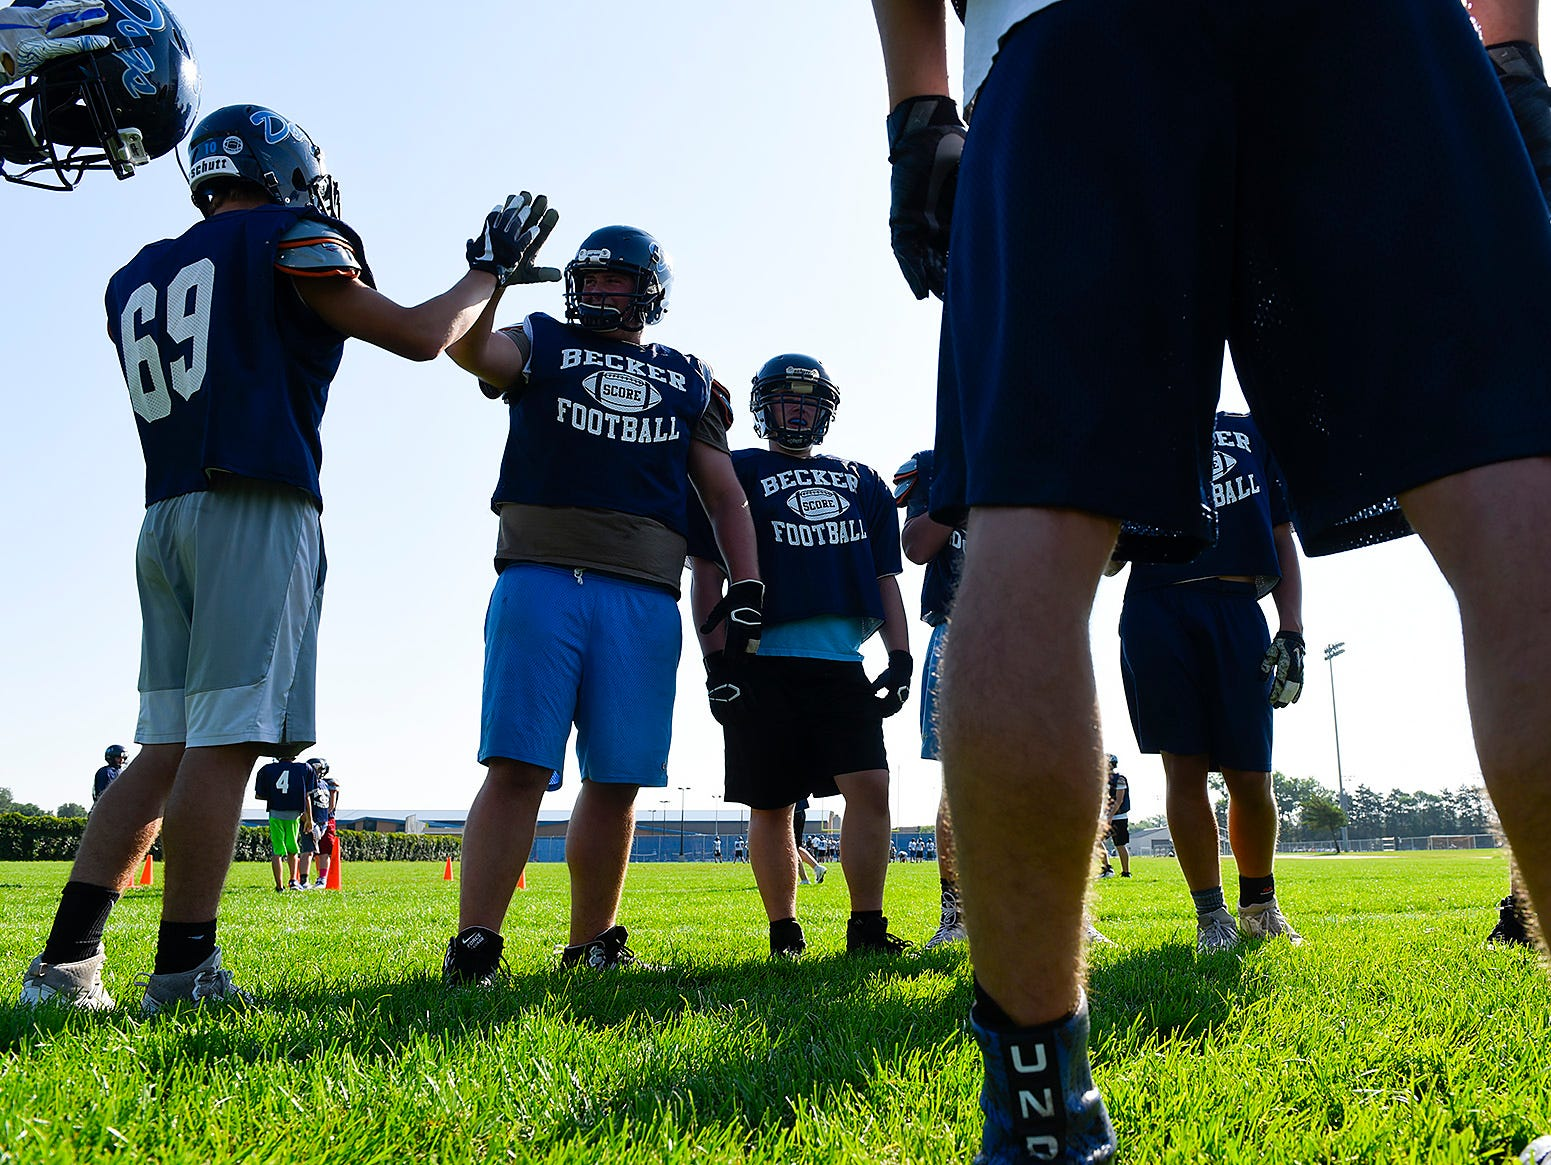 Becker celebrate a play in the huddle Wednesday, Aug. 22, at the Becker High School.